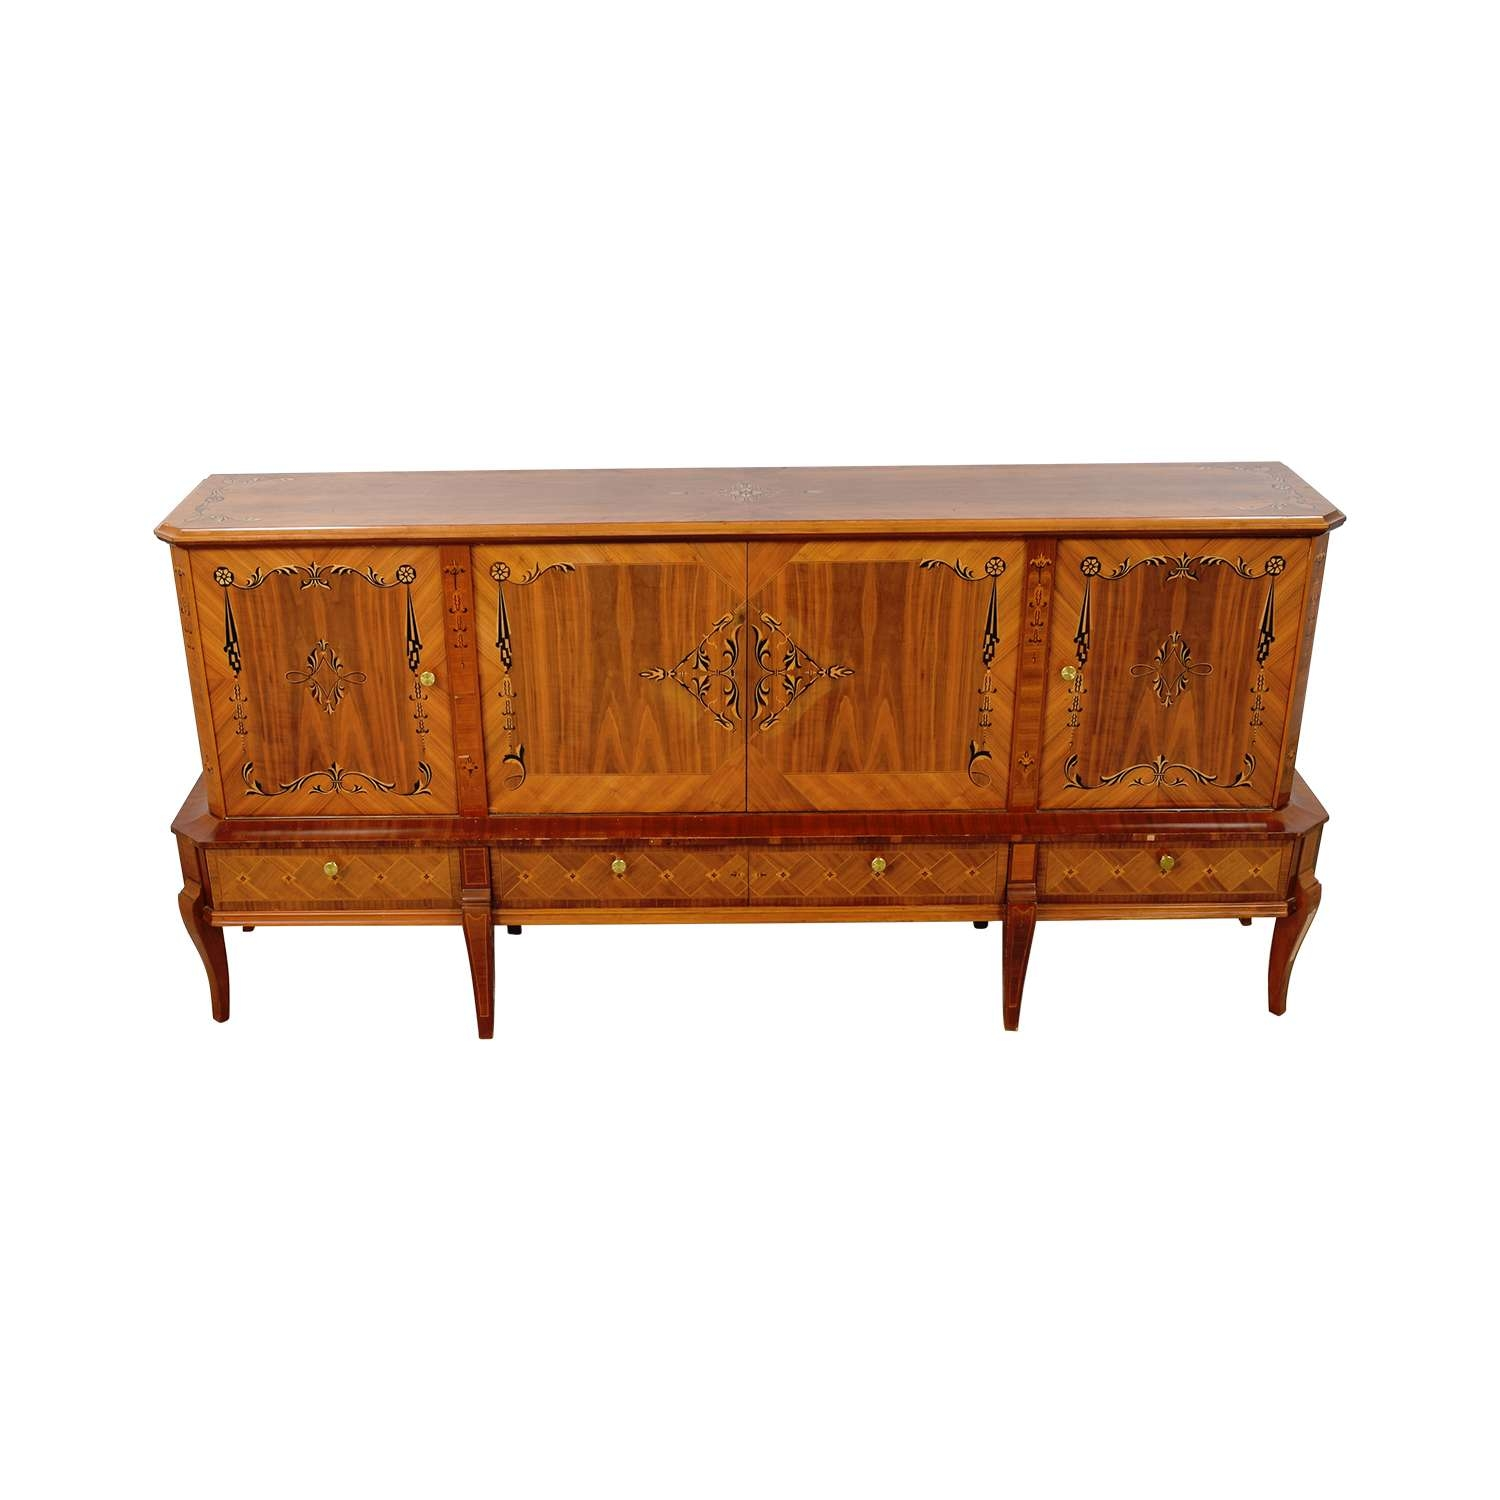 76% Off – Romanian Sheraton Solid Wood Sideboard / Storage With Regard To Solid Wood Sideboards (View 15 of 20)